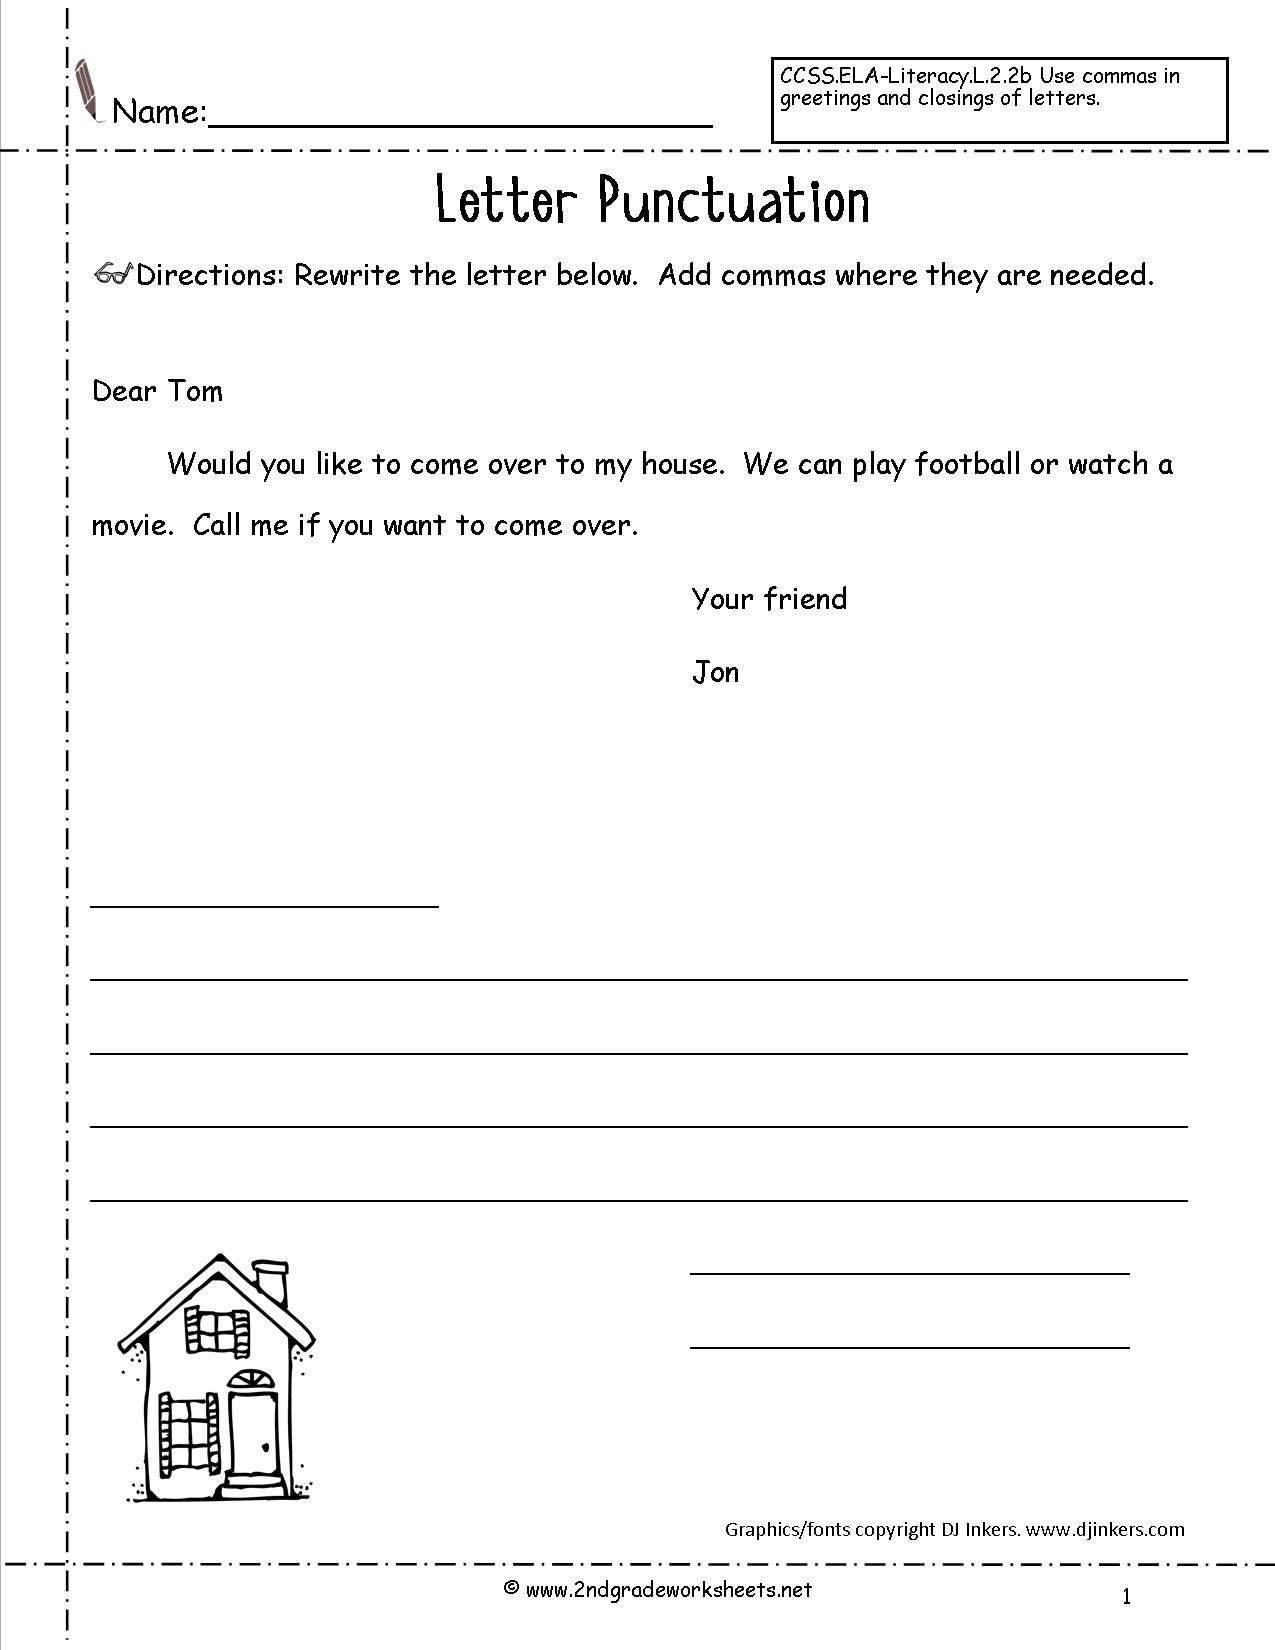 Dialogue Worksheets for Middle School Letters and Parts Of A Letter Worksheet